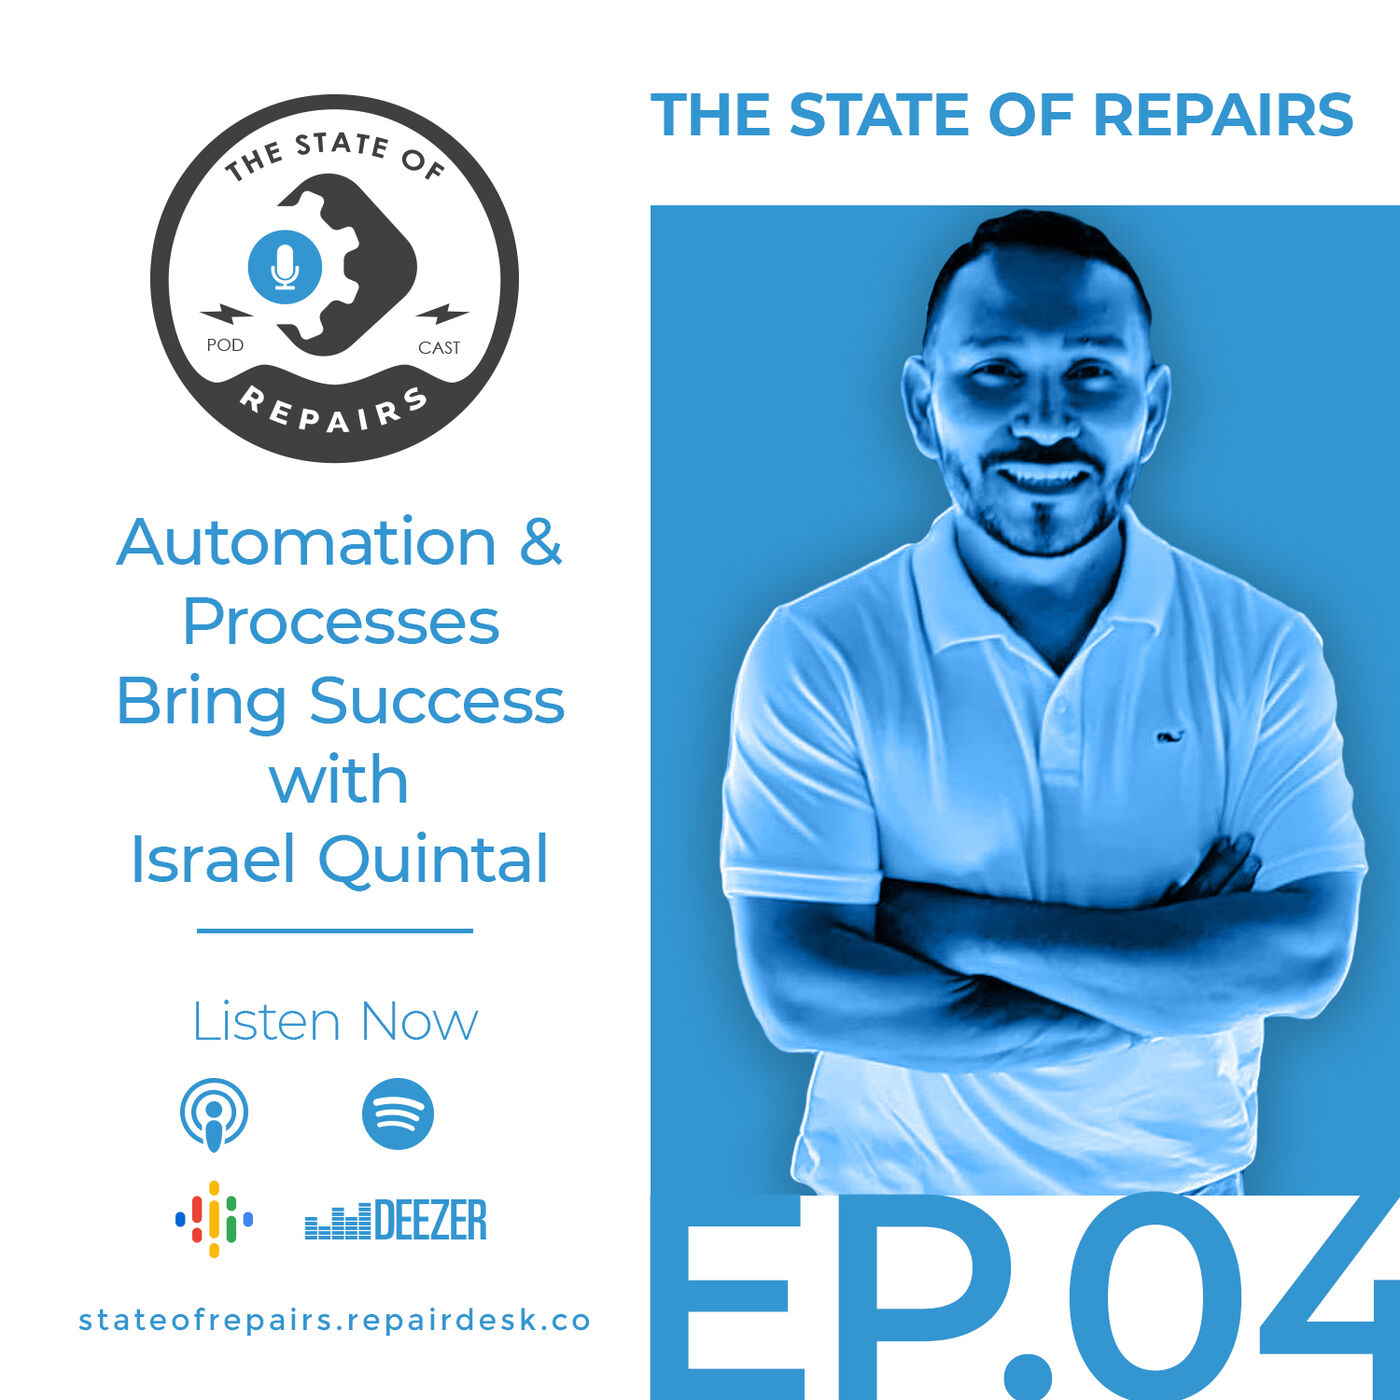 Episode 4 - Automation & Processes Bring Success with Israel Quintal